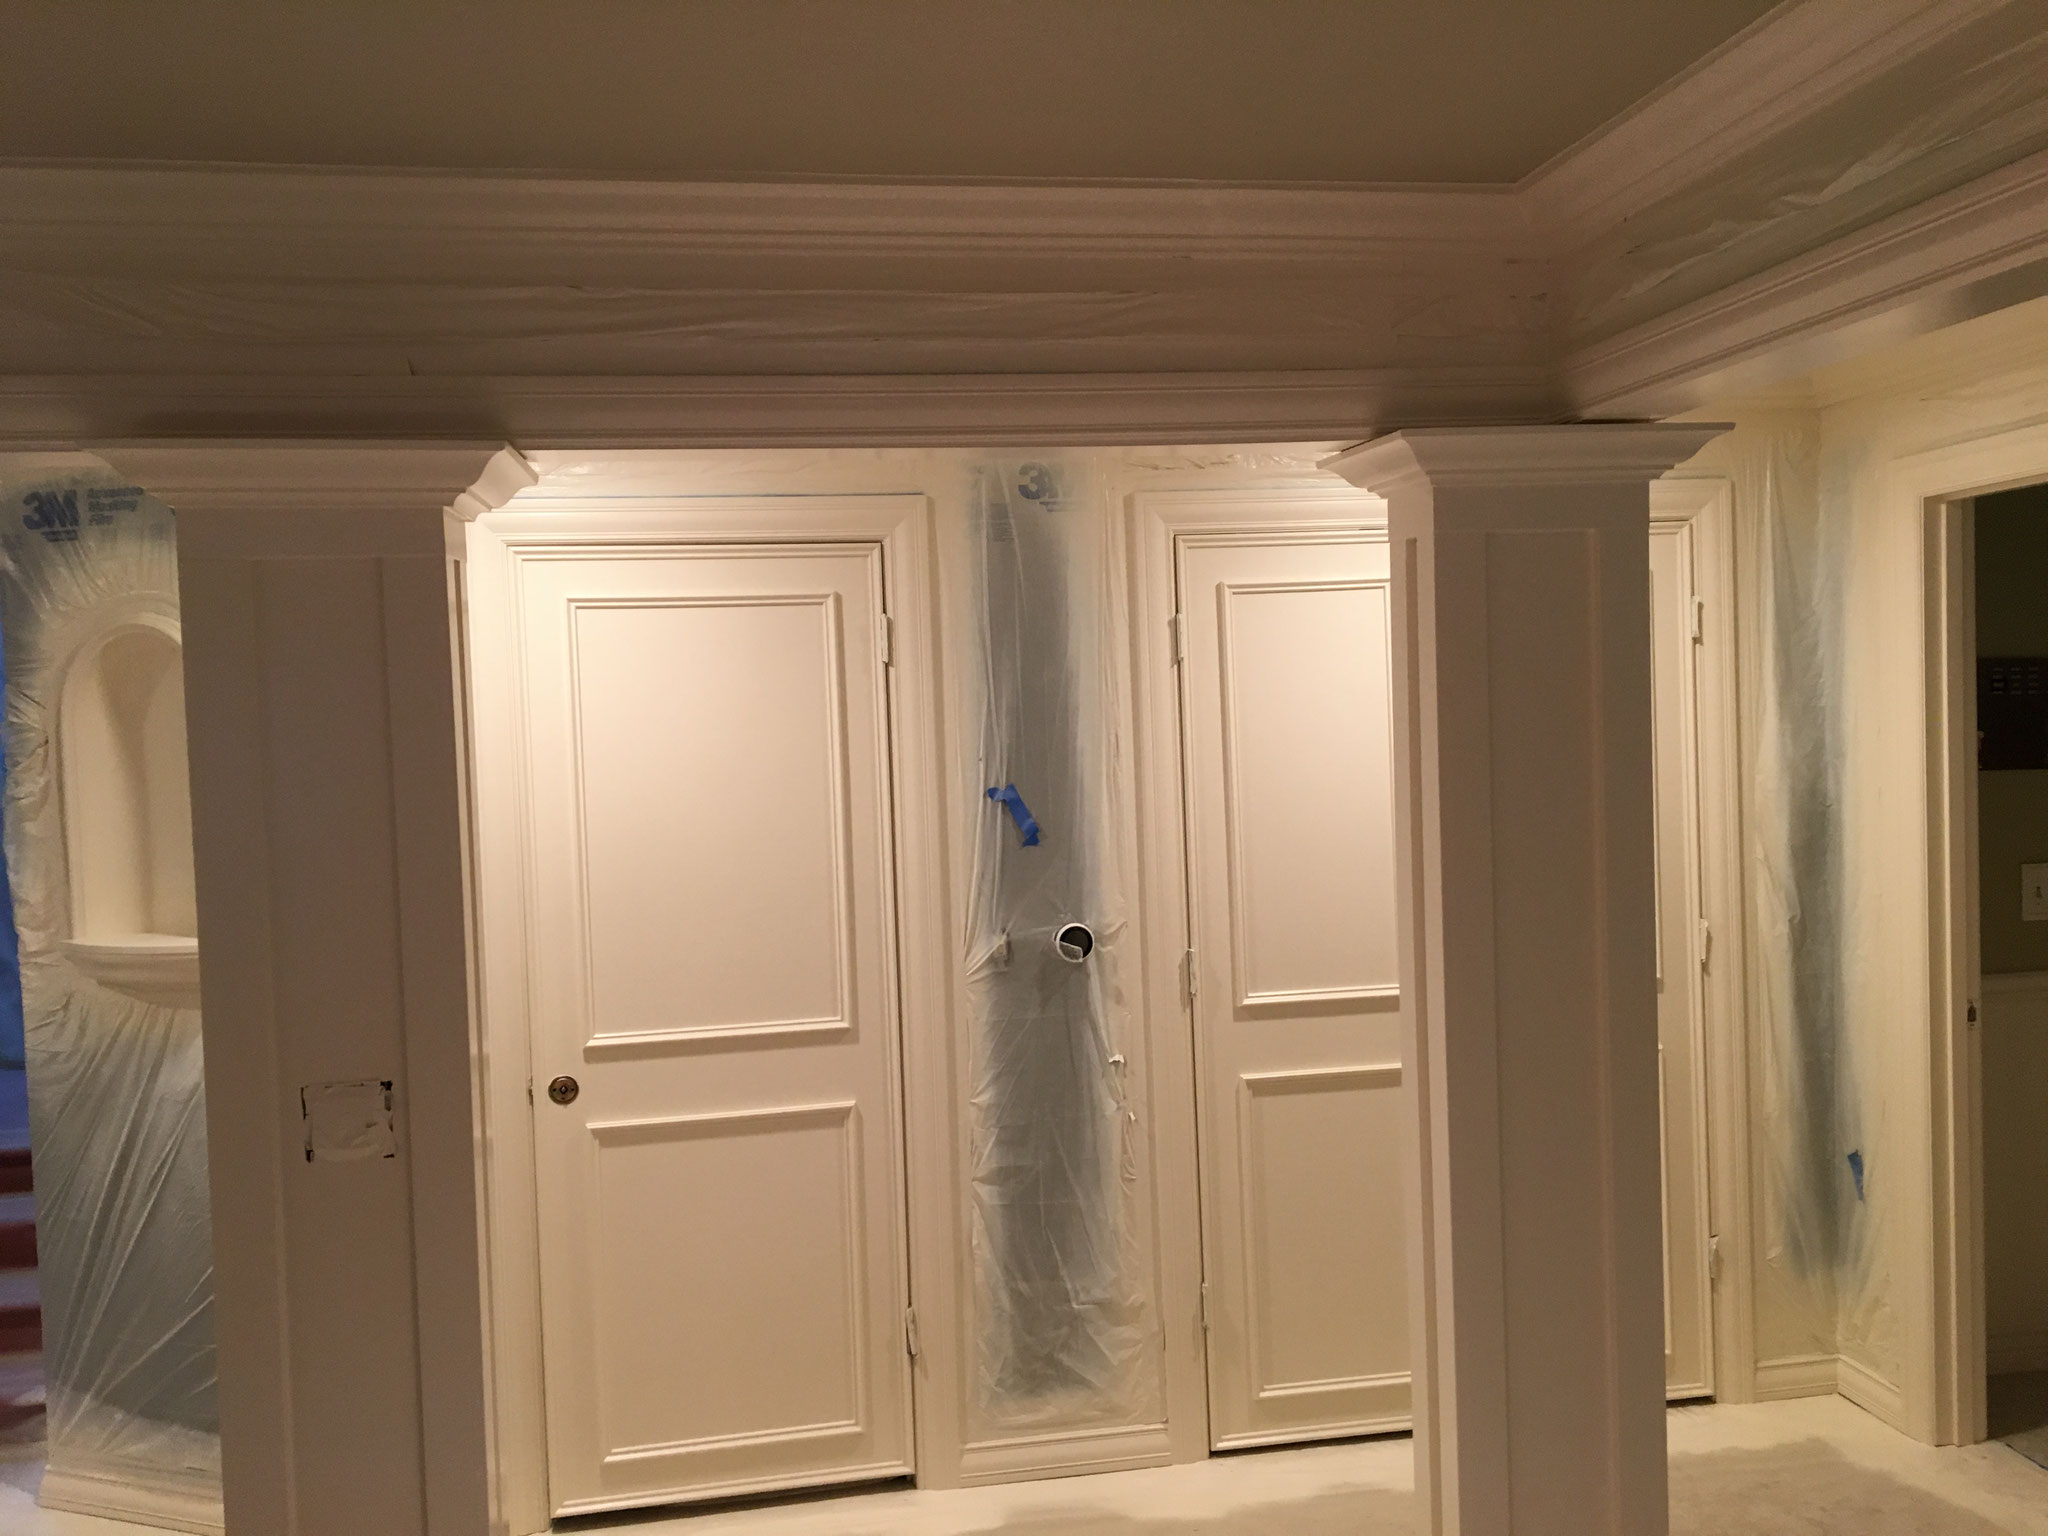 Interior woodwork sprayed fine finish...the walls are protected with plastic.